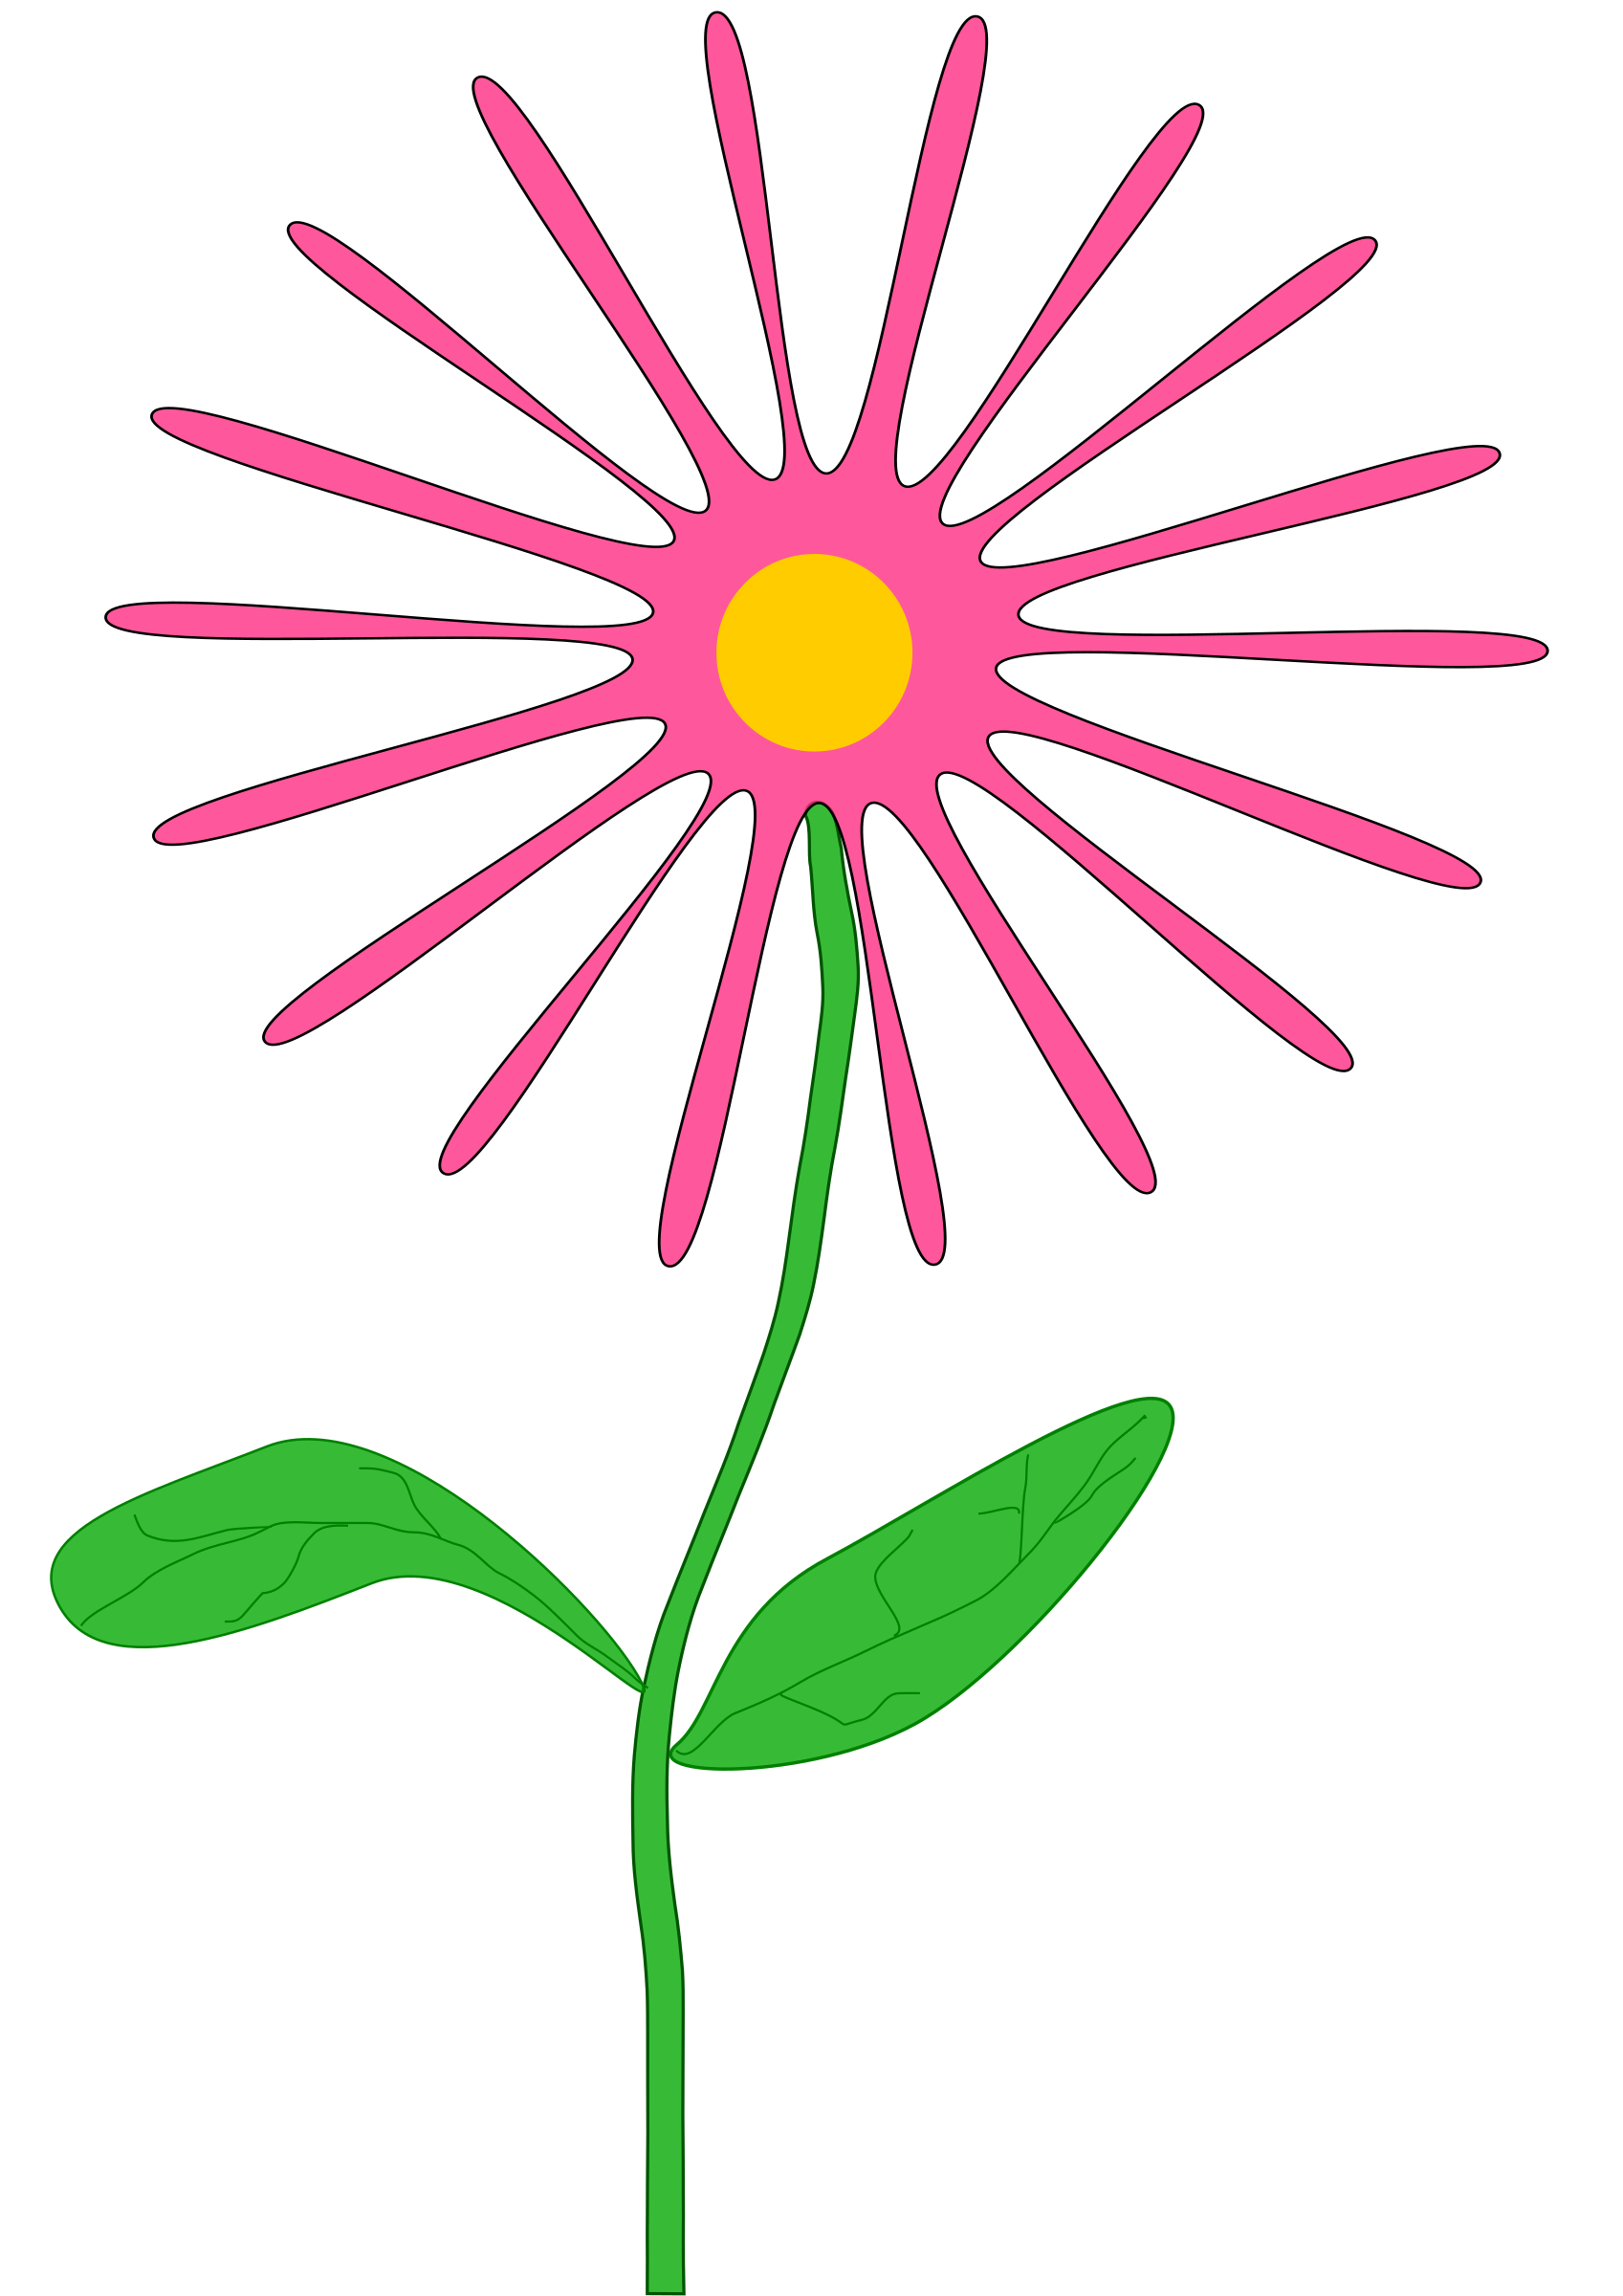 Whimsical flower clipart image download Clipart - Whimsical pink flower image download